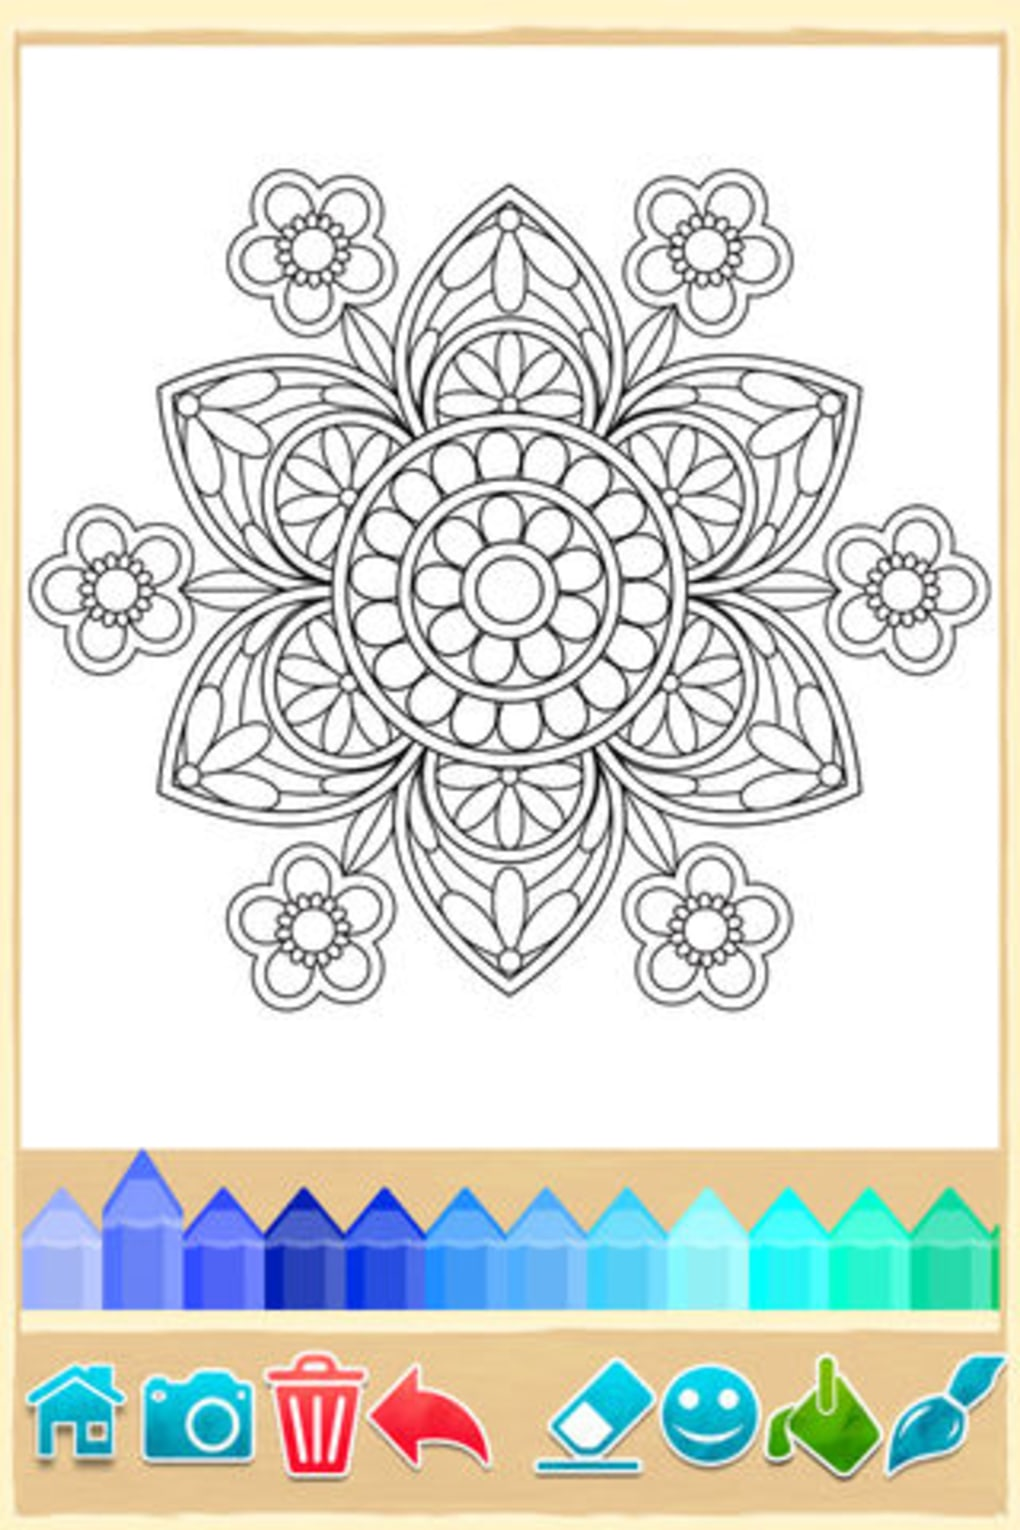 Mandala Coloring Pages Game for